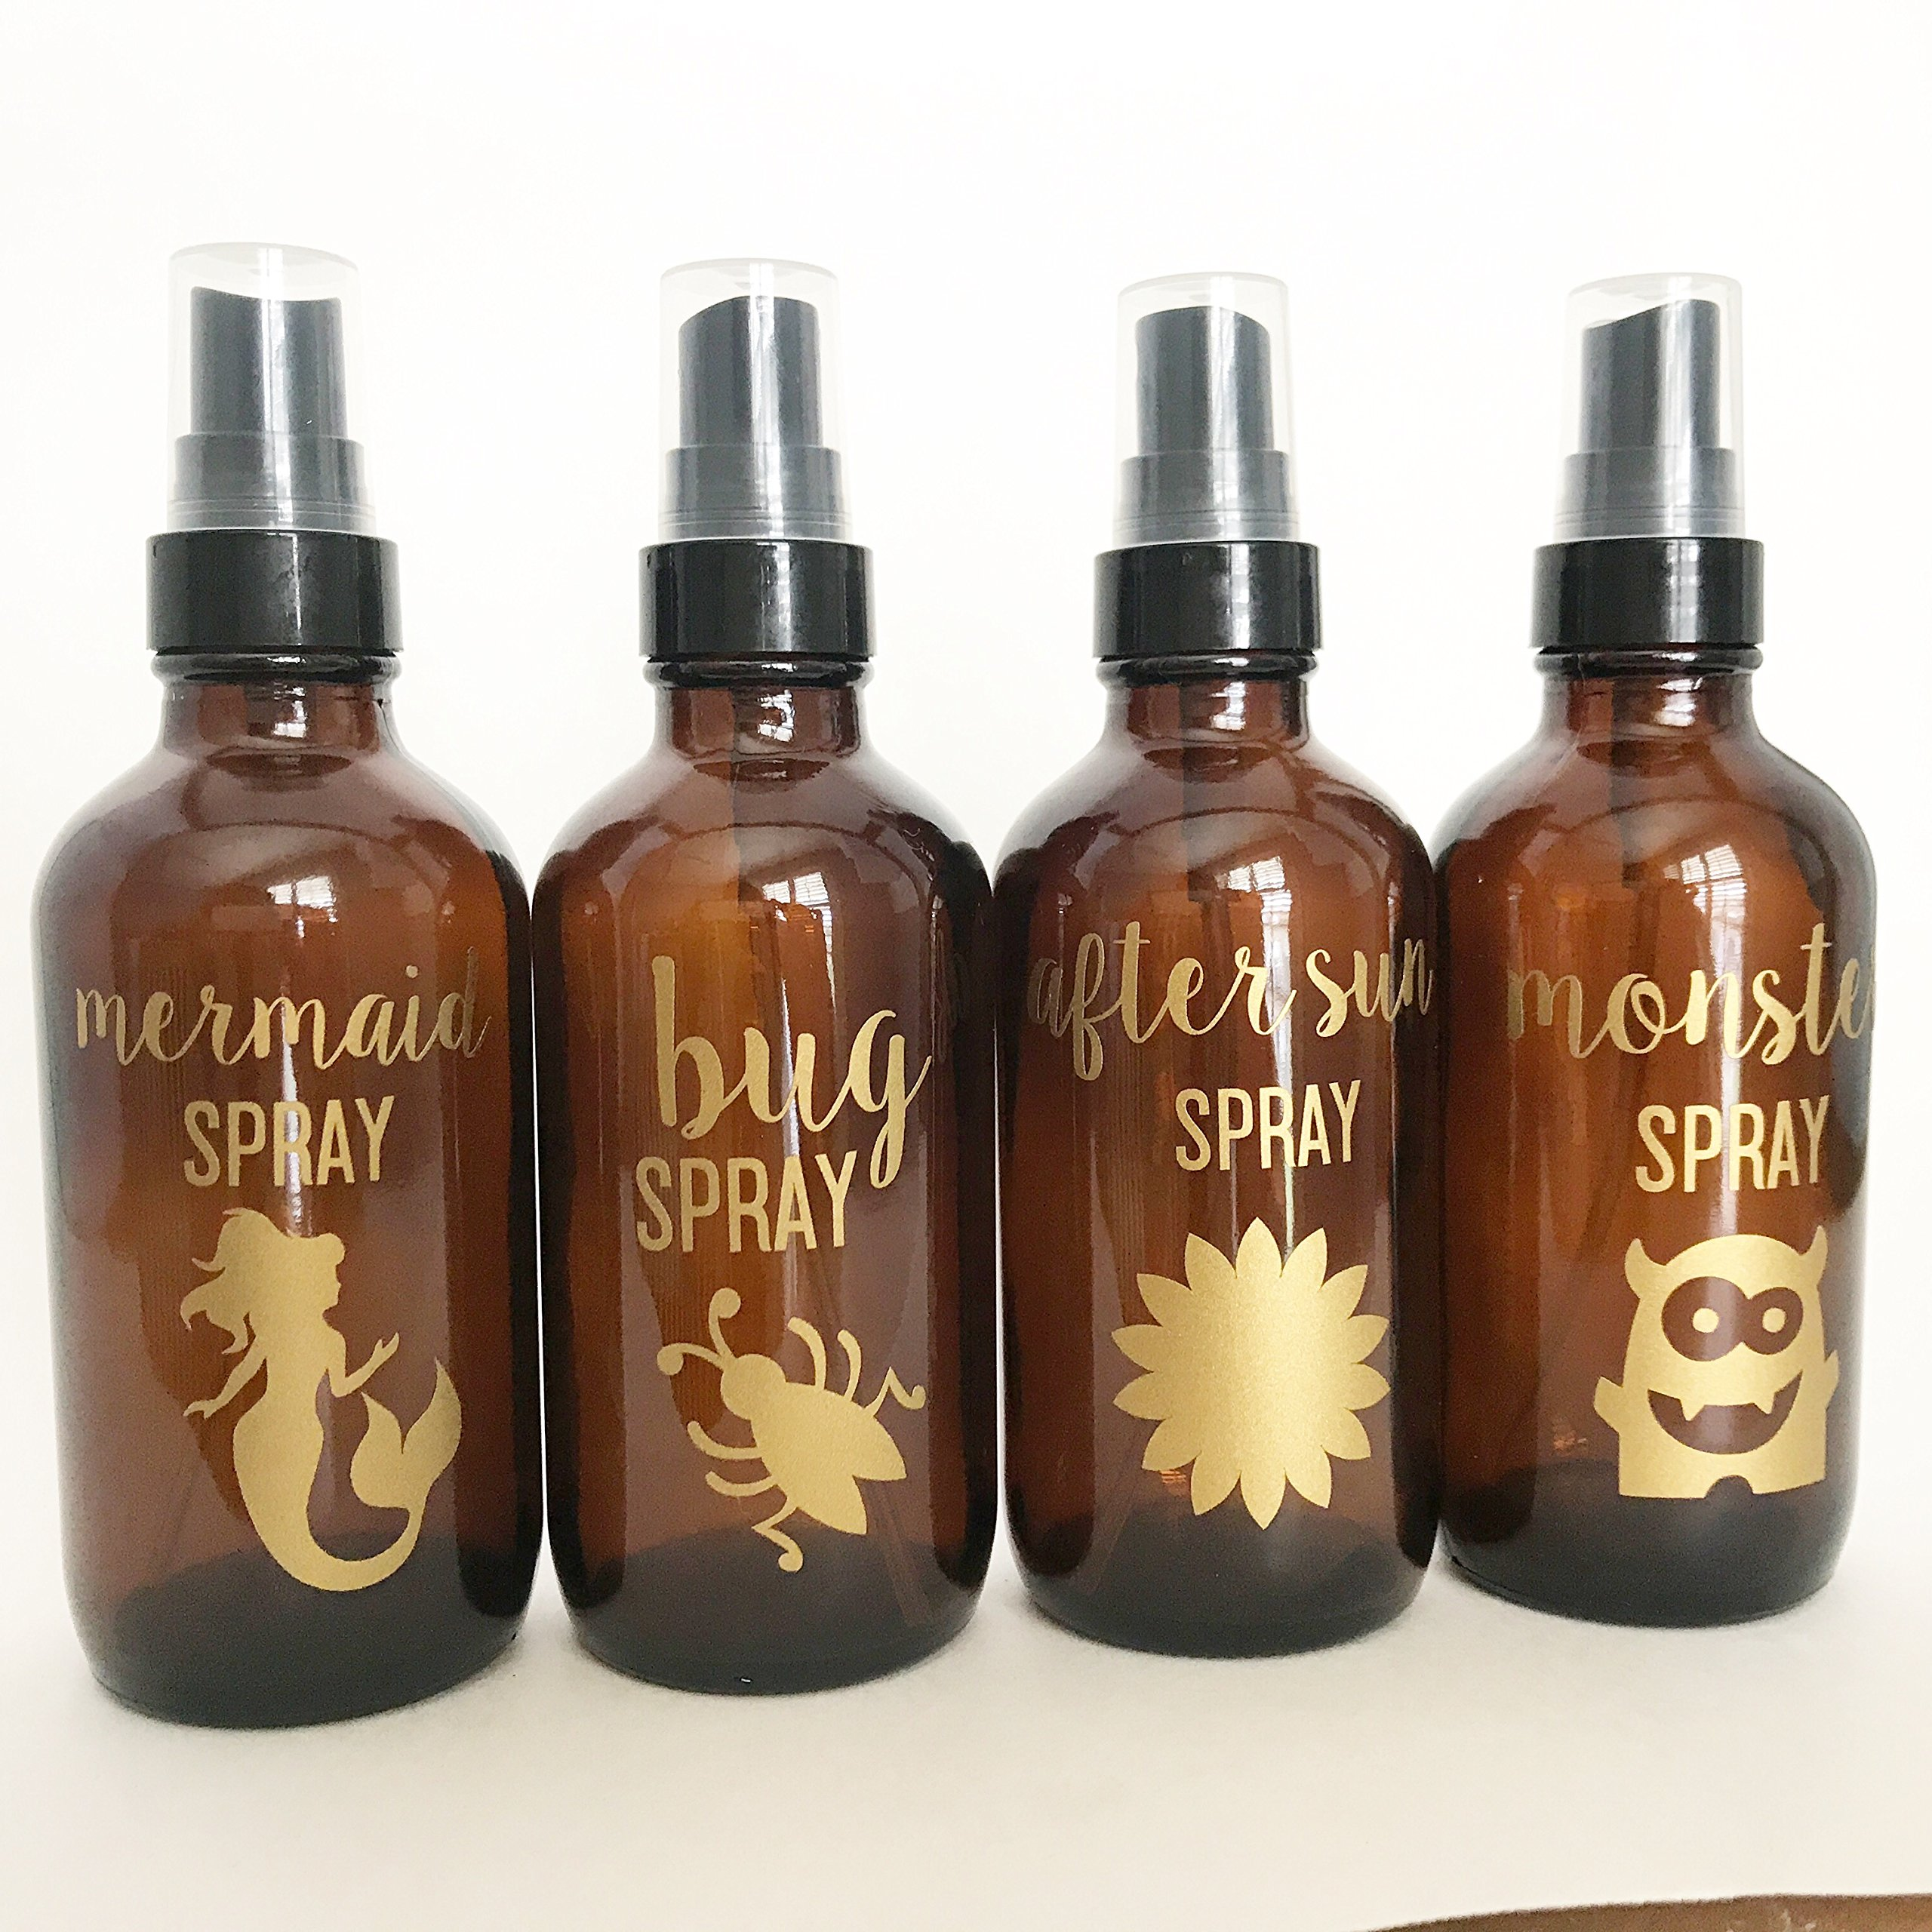 Essential oil labels for spray bottles//bottes not included//mermaid spray//bug spray//monster spray//after sun spray